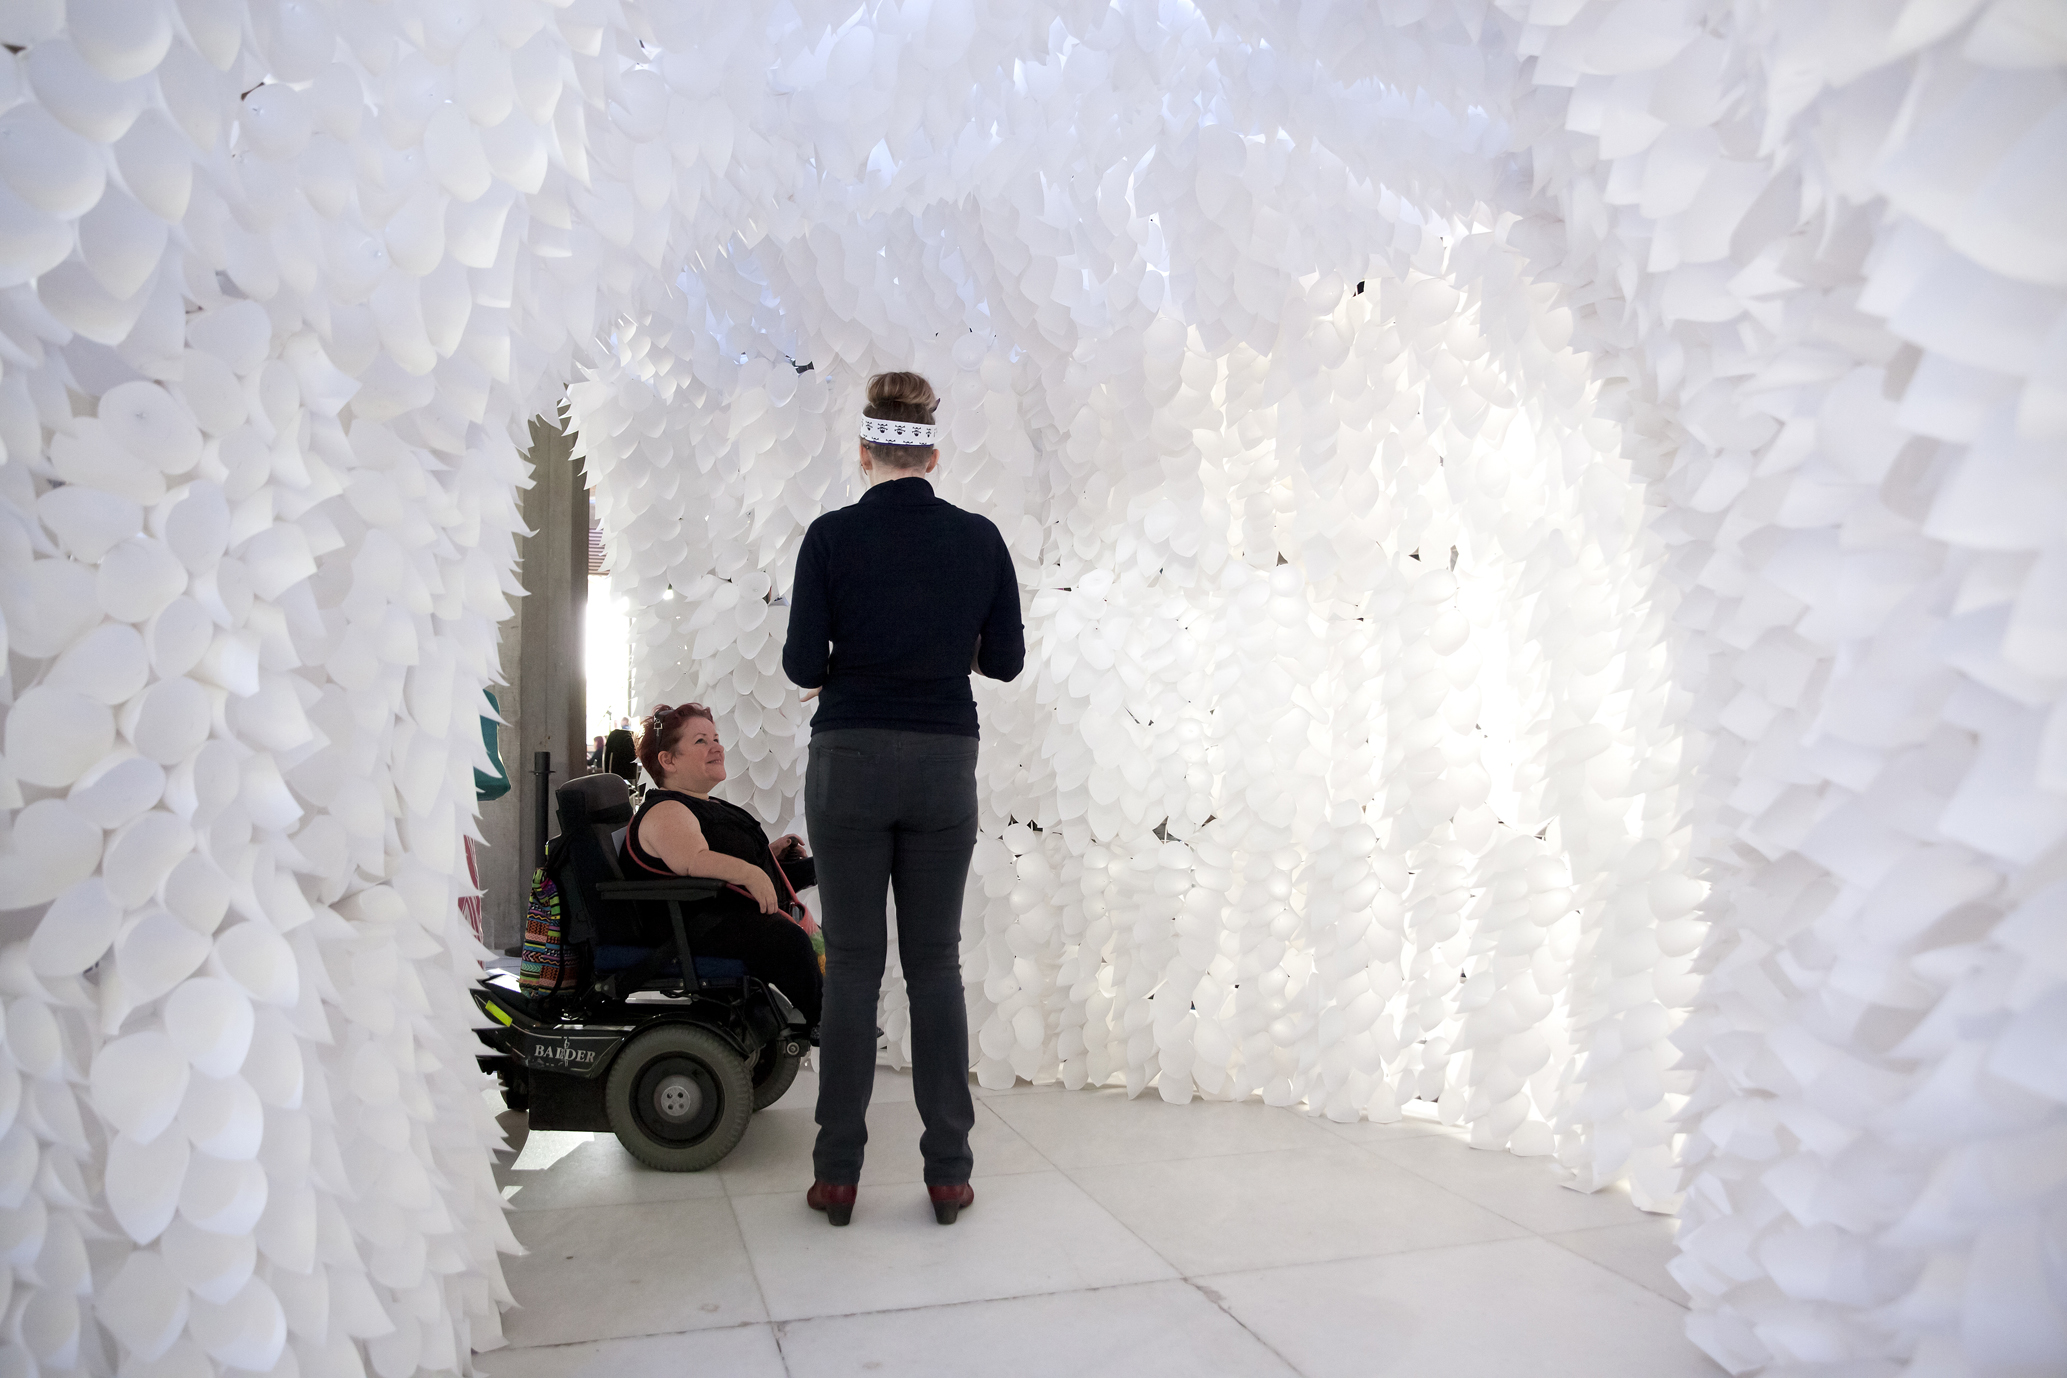 Two Caucasian women, one of whom is a wheelchair user, are within a white archway. Its inside is lined with row upon row of white cones, which appear to be paper, and are lit to appear as though they are glowing.